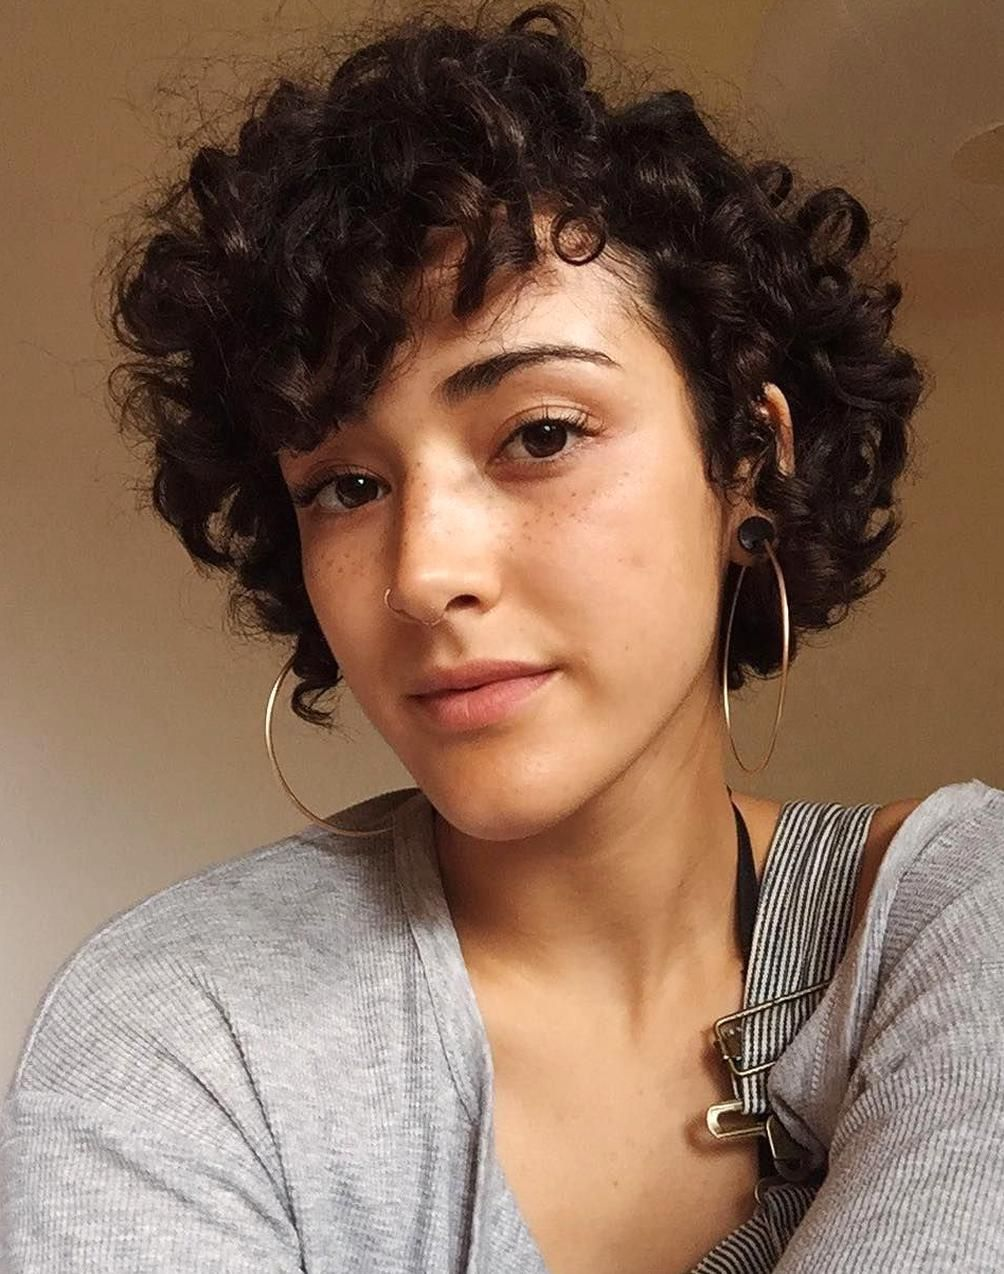 90s Curly Hairstyles Curly Hair Videos X Curly Hairstyles Curly Hairstyles Long Hair Curly Hairstyles Roun Curly Hair Styles Hair Videos Curly Hair Videos